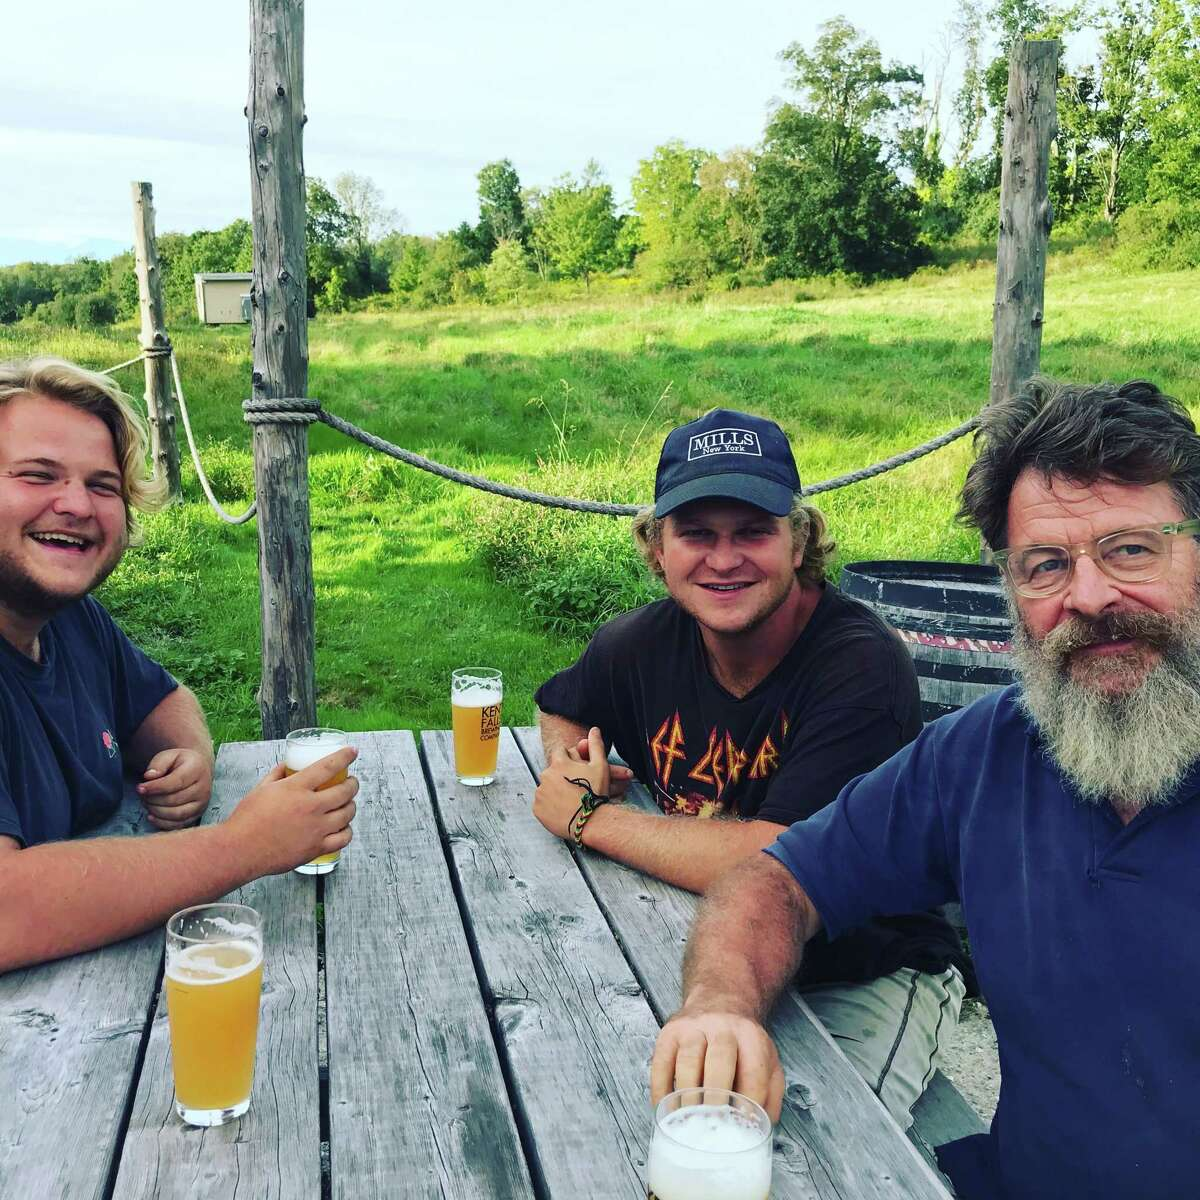 Dr. James Shepherd (right) enjoys the fruit of his labors with sons James McD (middle) and George W (left), who have worked in the hopyard every summer.